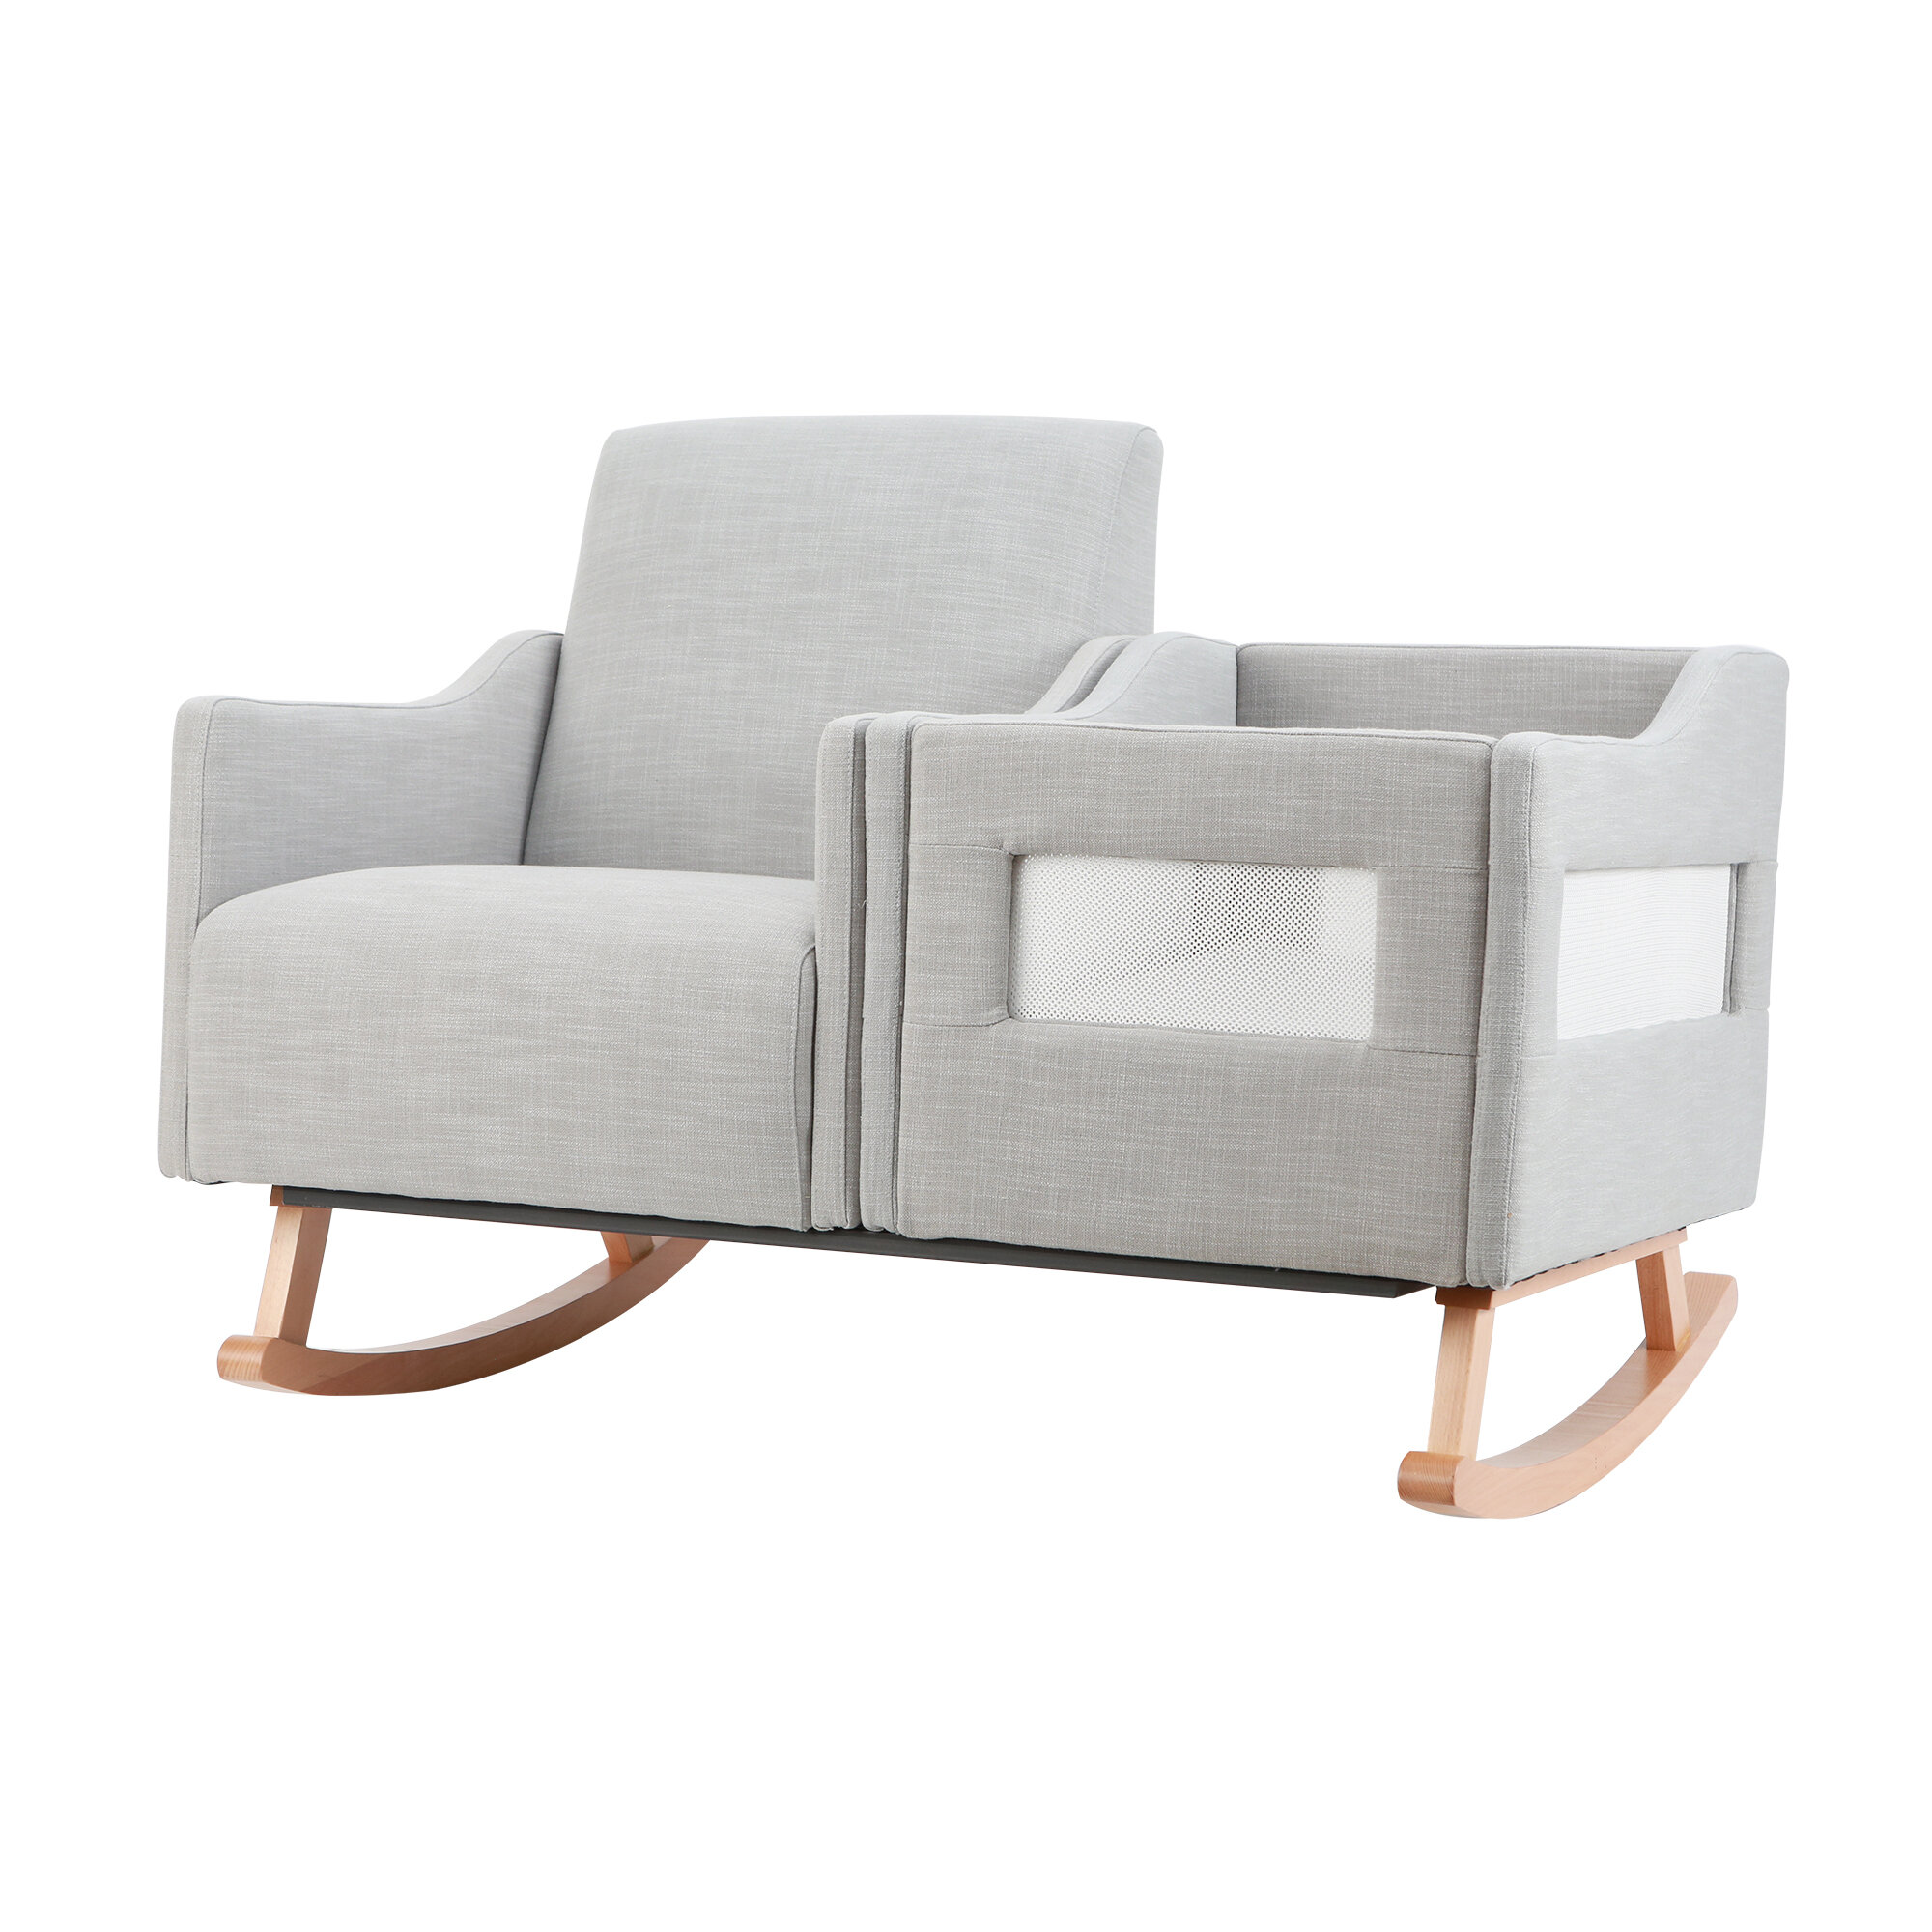 sc 1 st  AllModern & Emerson Rocking Chair u0026 Reviews | AllModern